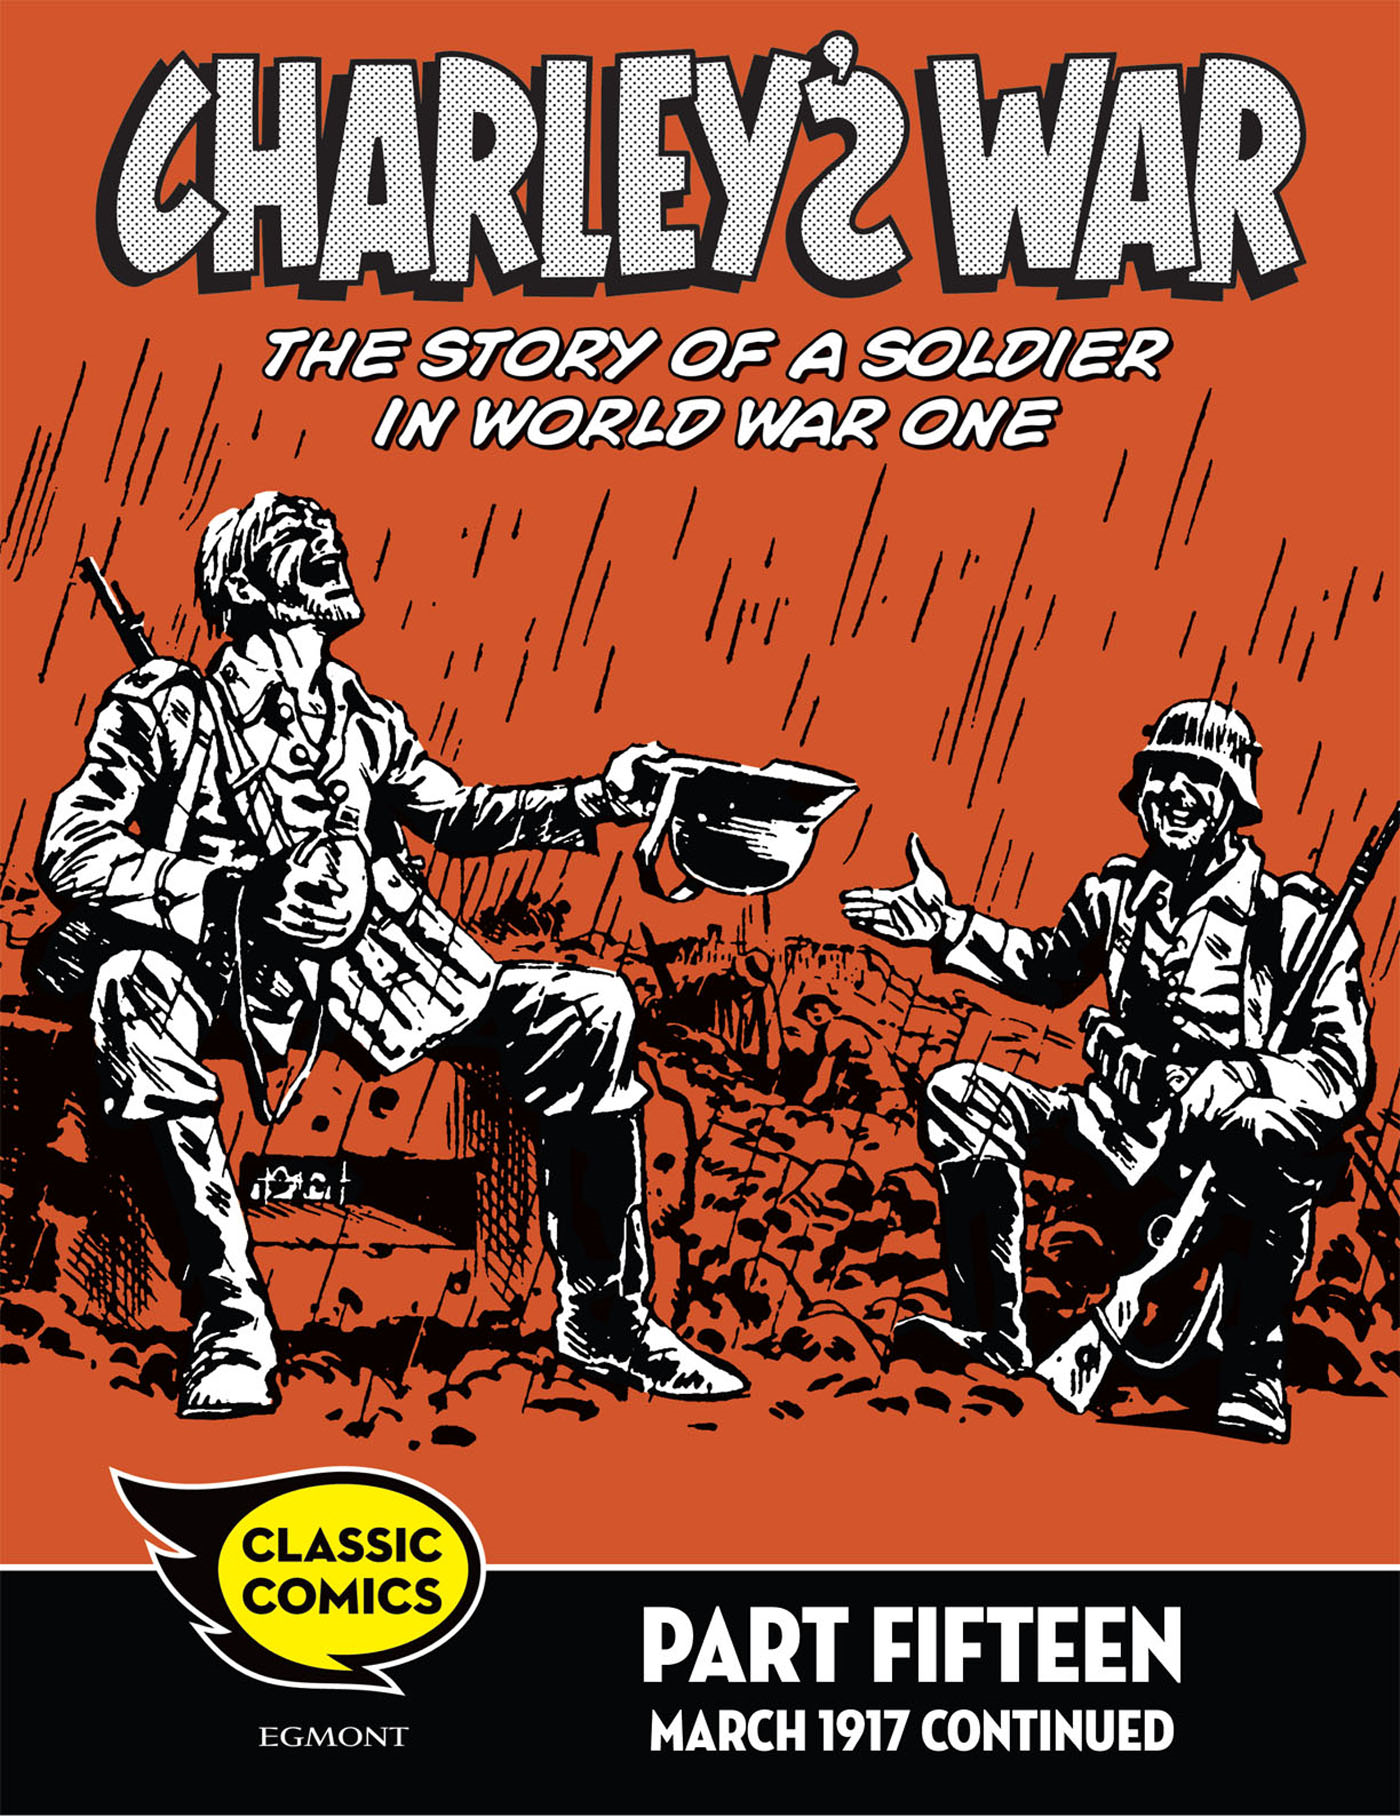 Charley's War Comic Part Fifteen: March 1917 continued